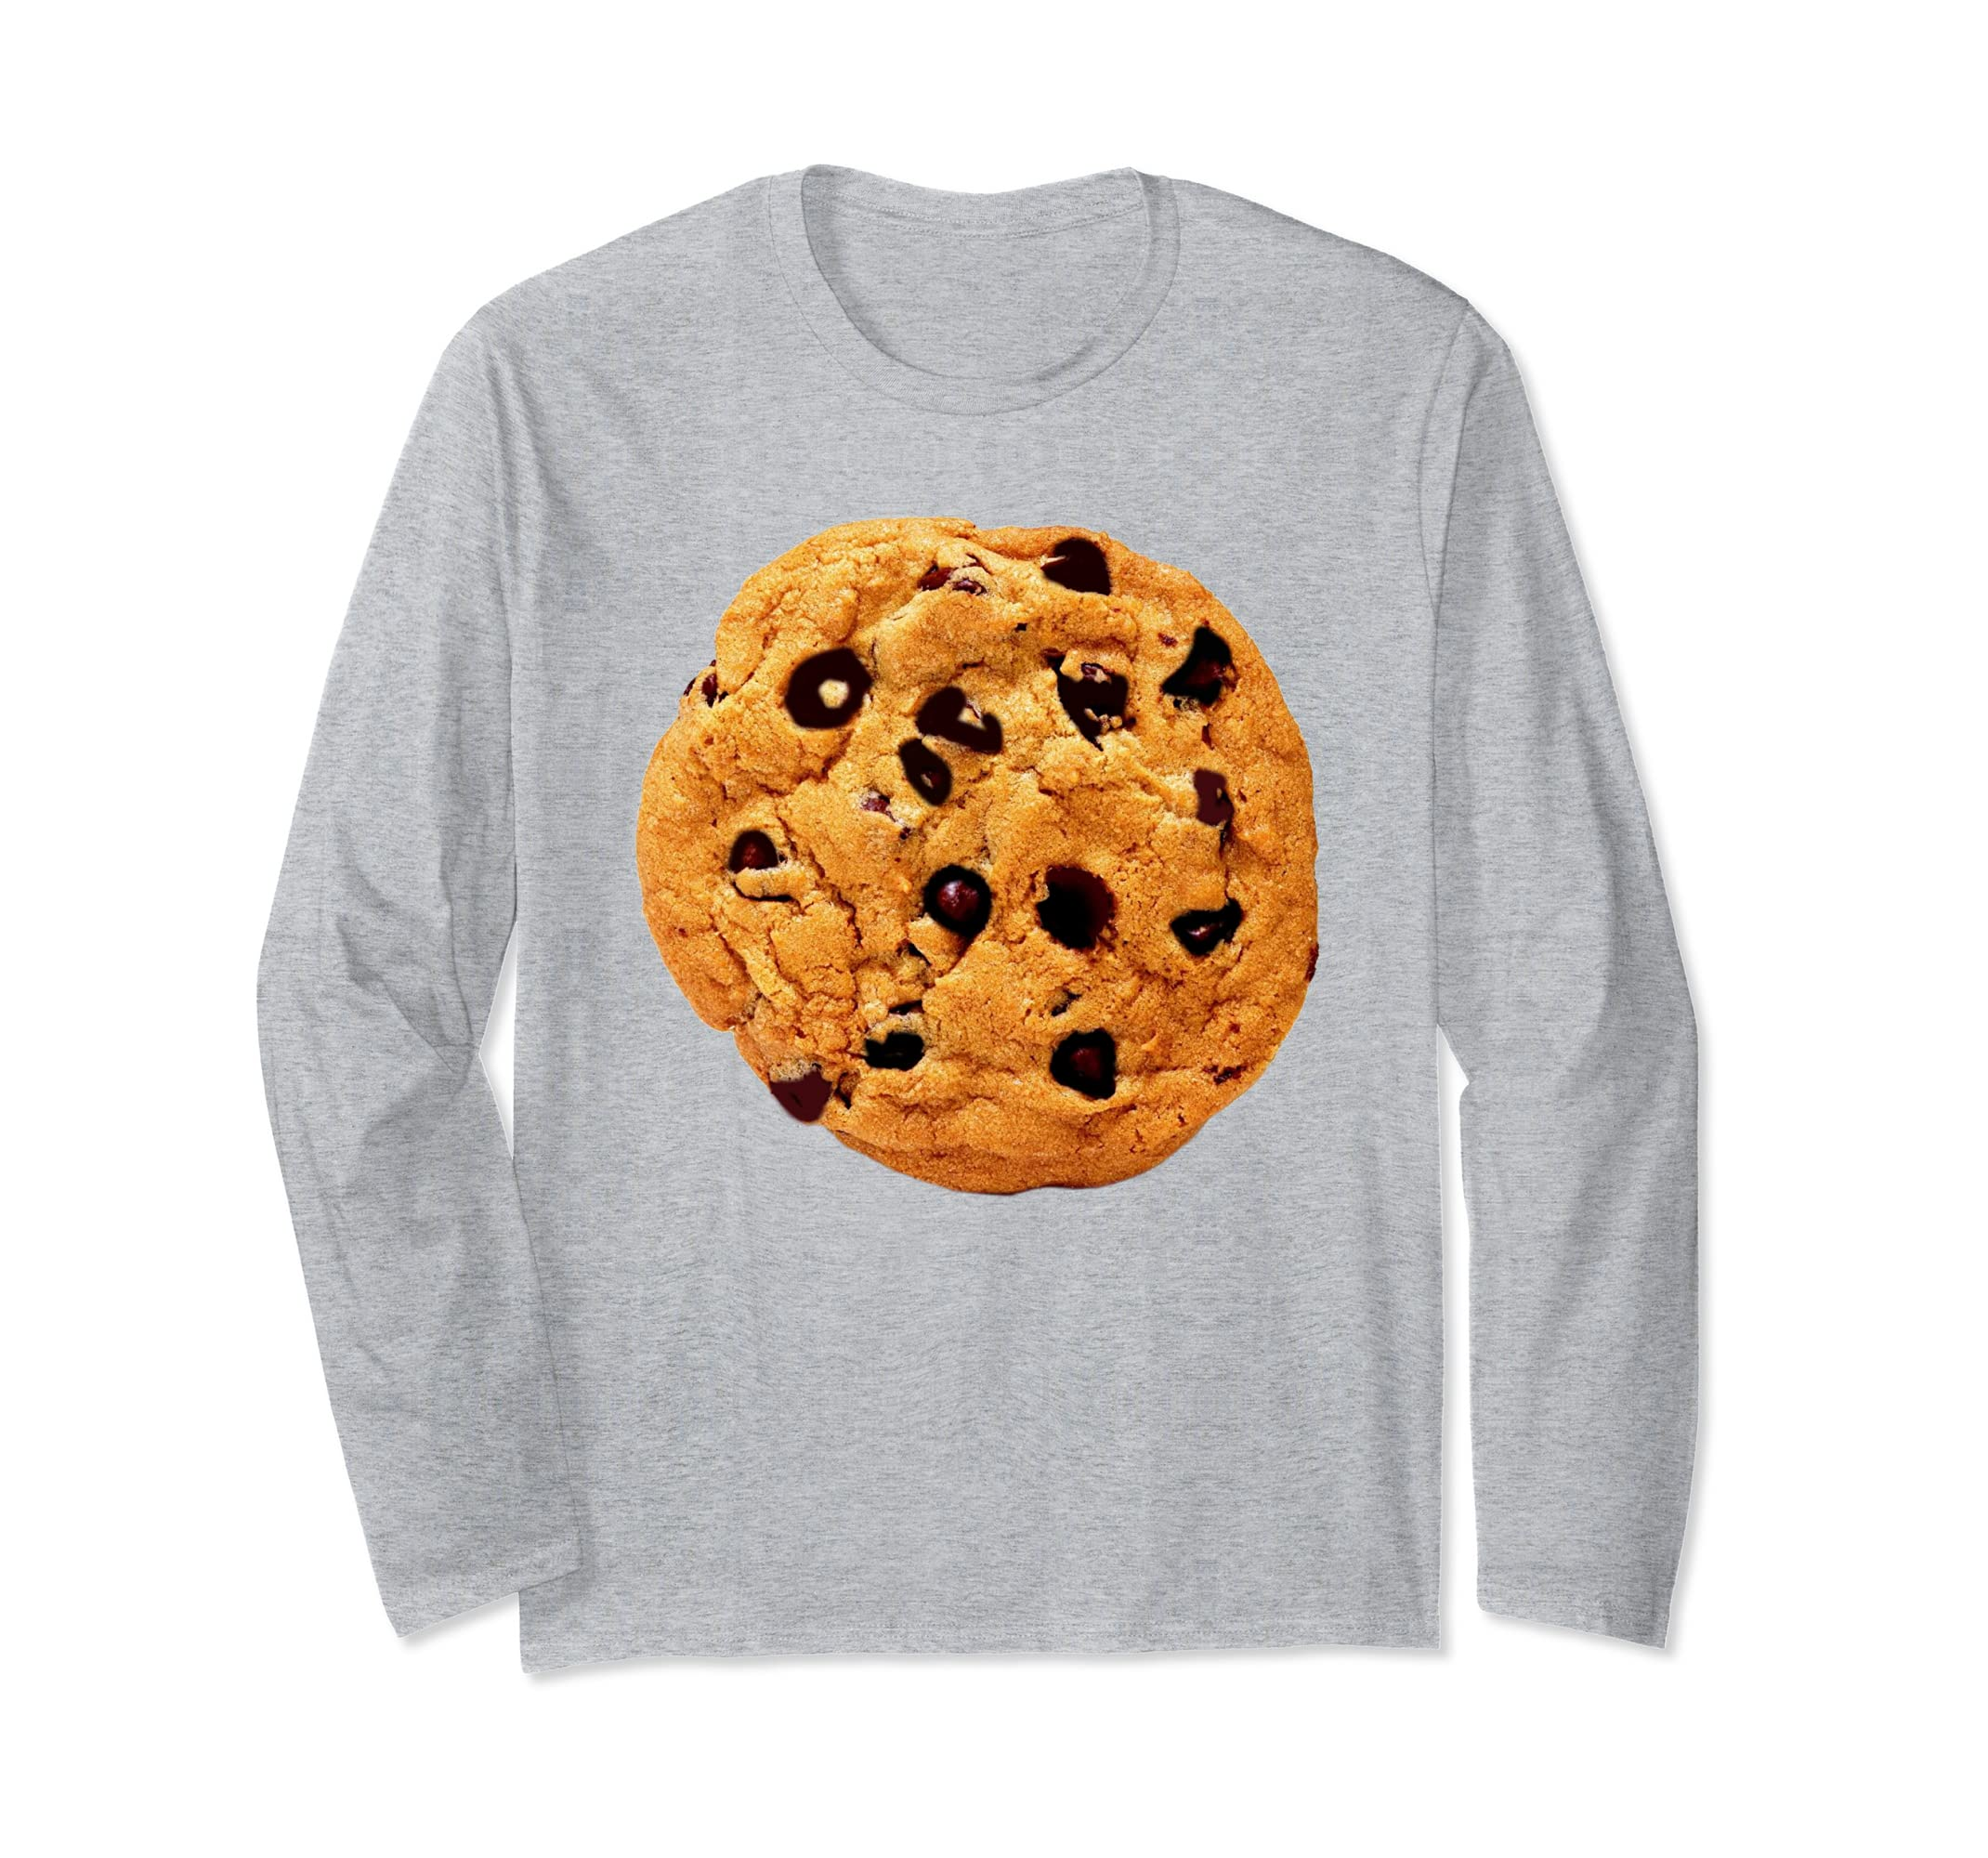 Chocolate Chip Cookie Costume Shirt Holiday Party Idea-ln